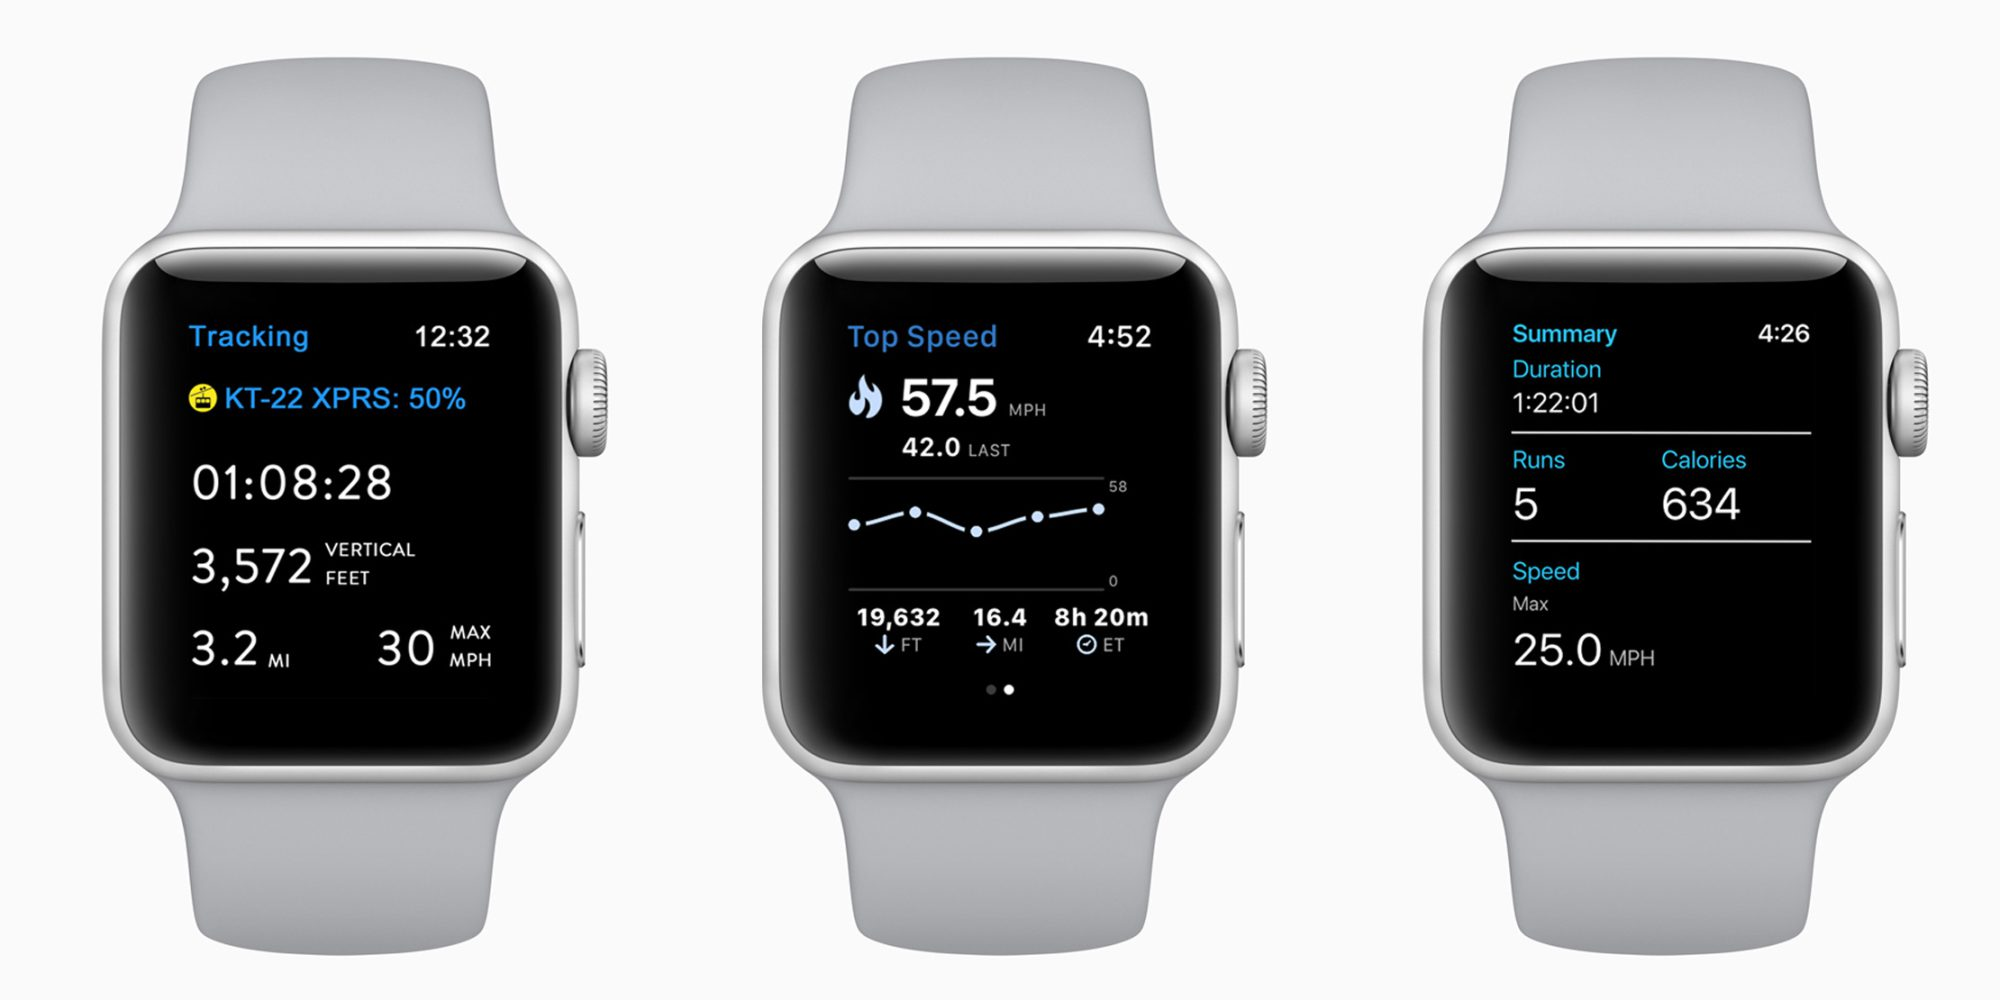 Apple Watch wintersport apps